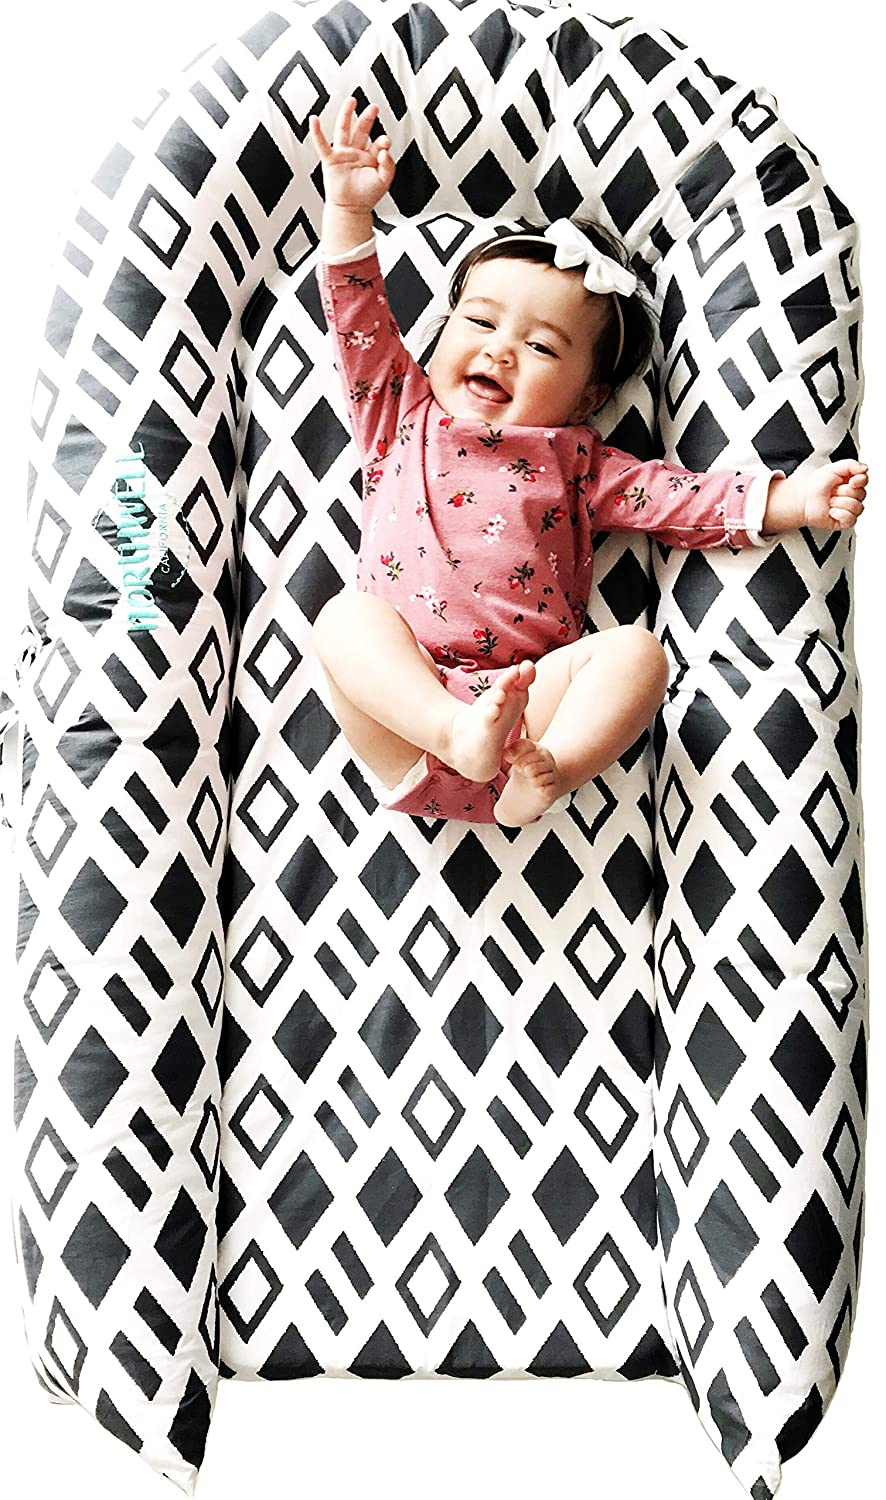 Toddler Nest for 9-36 Months CuddleNest Mighty by LoLueMade: Toddler Lounger Harbor Mist and Resting Station